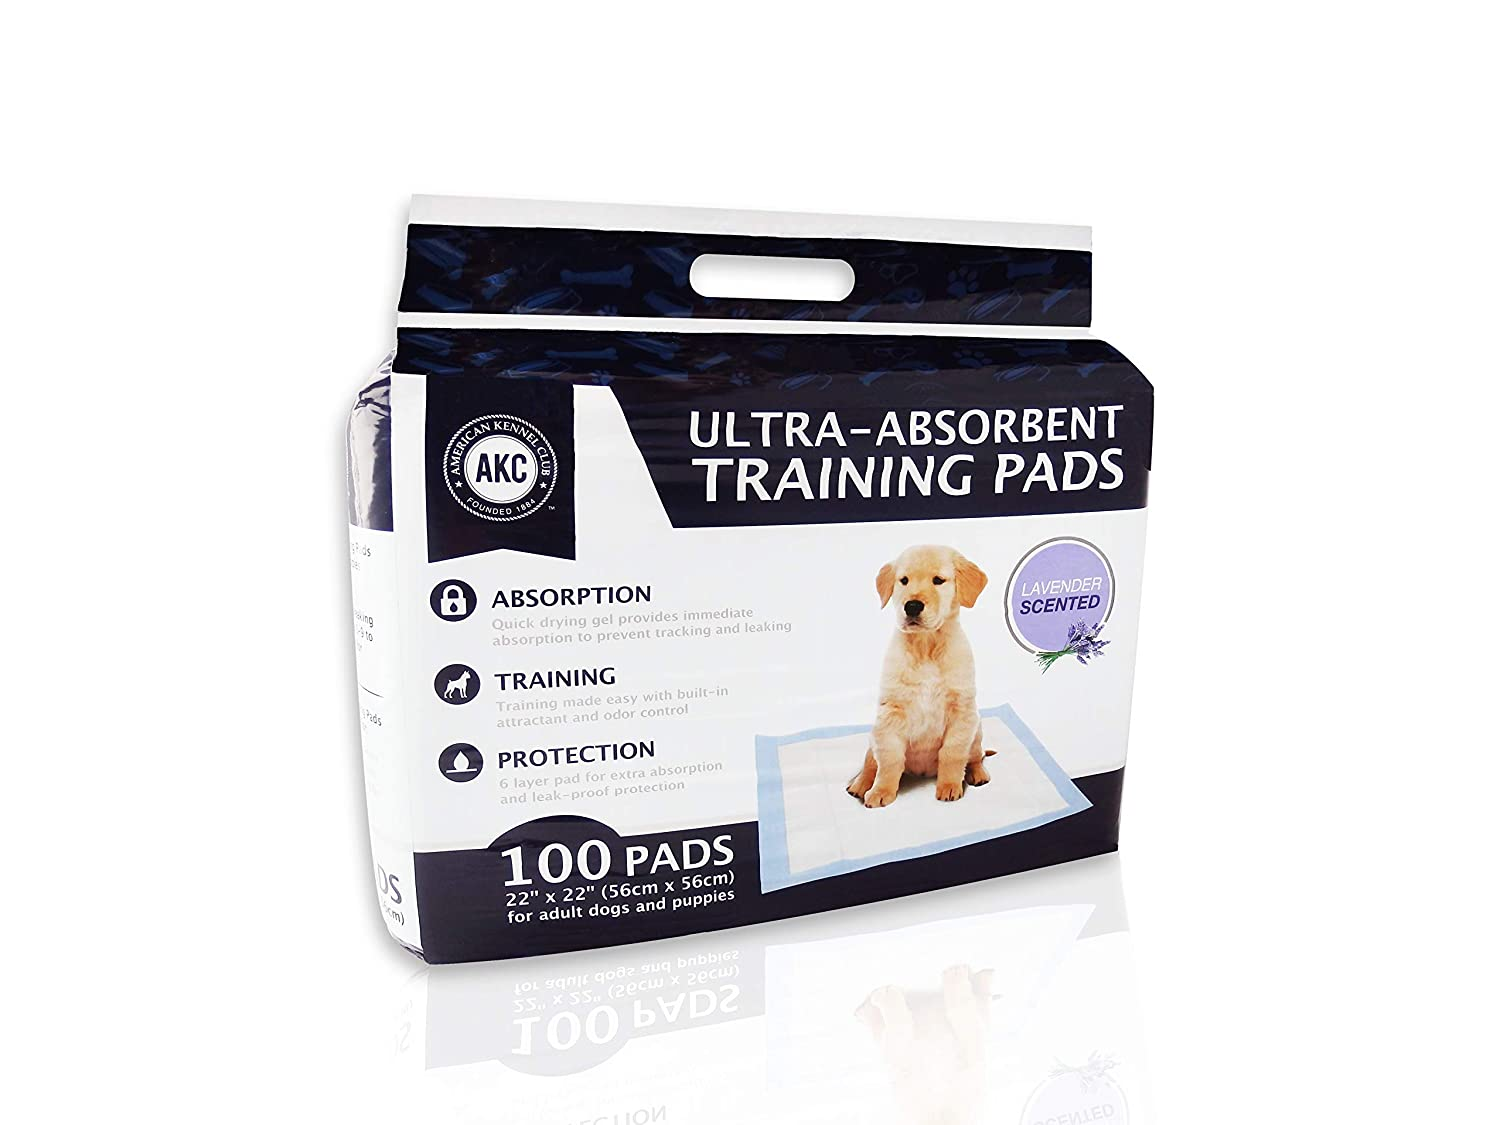 American Kennel Club Lavender Scented Training Pads